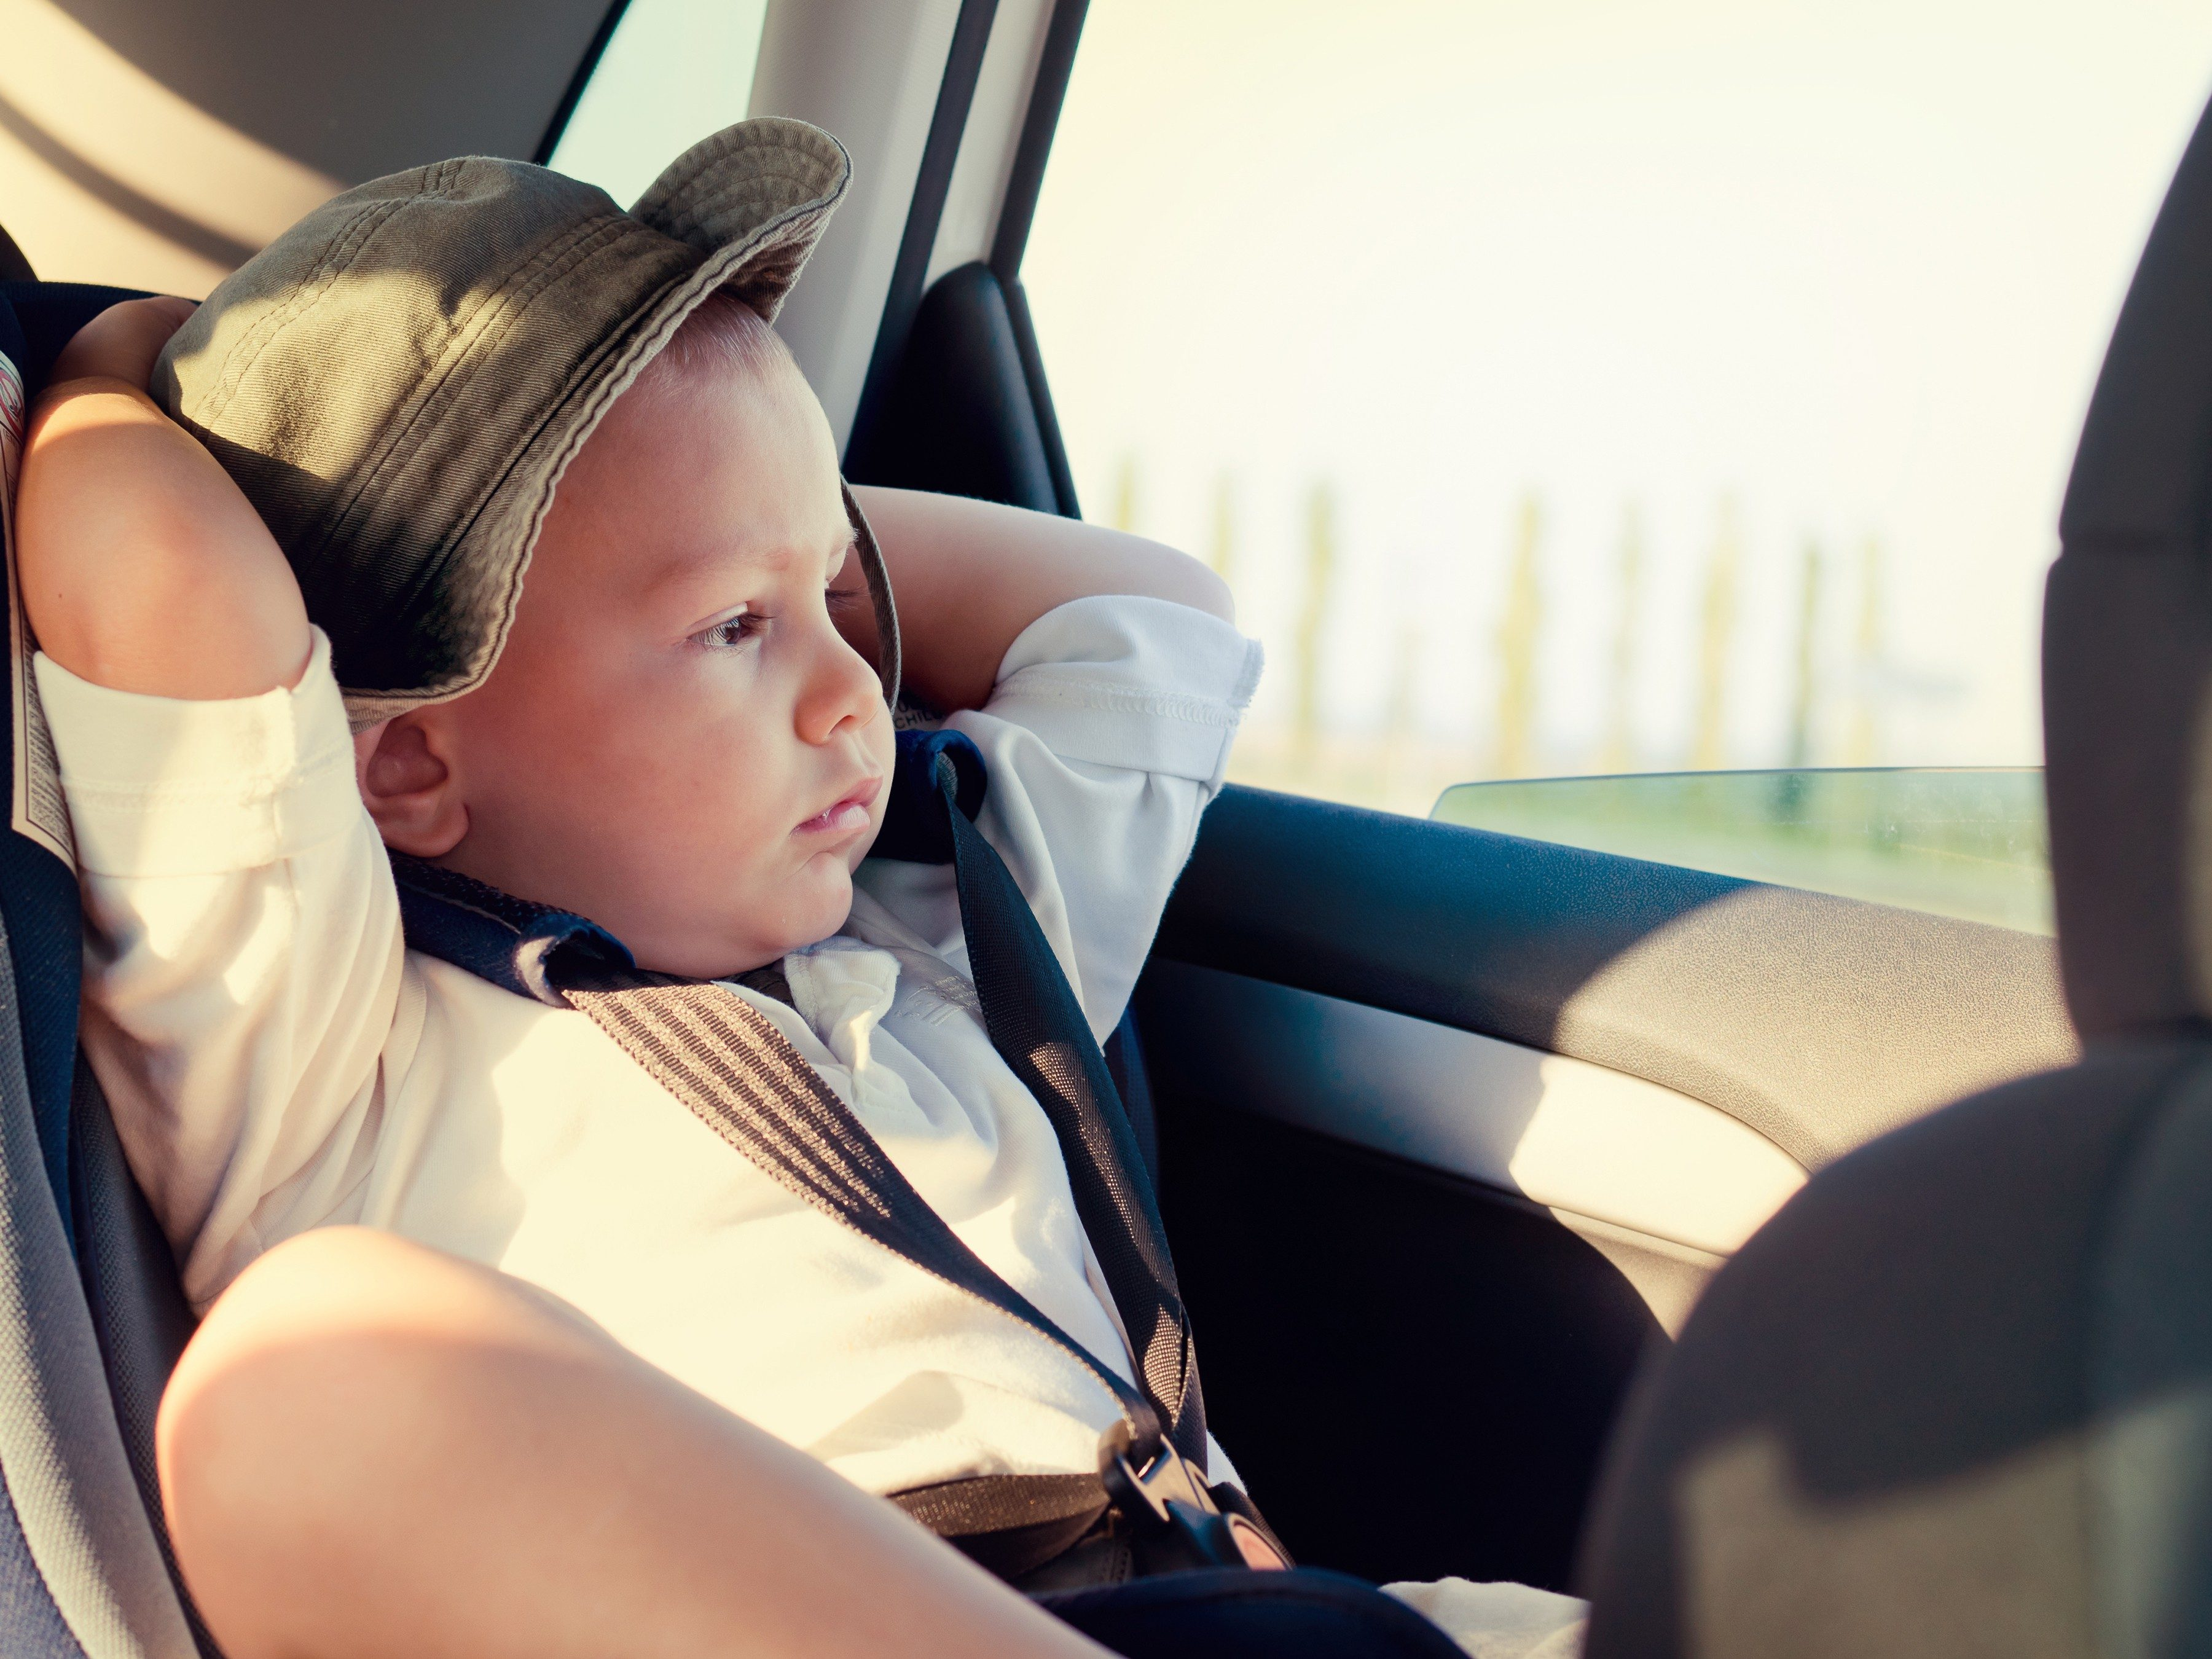 Driving tip #9: Get the kids settled before you leave.